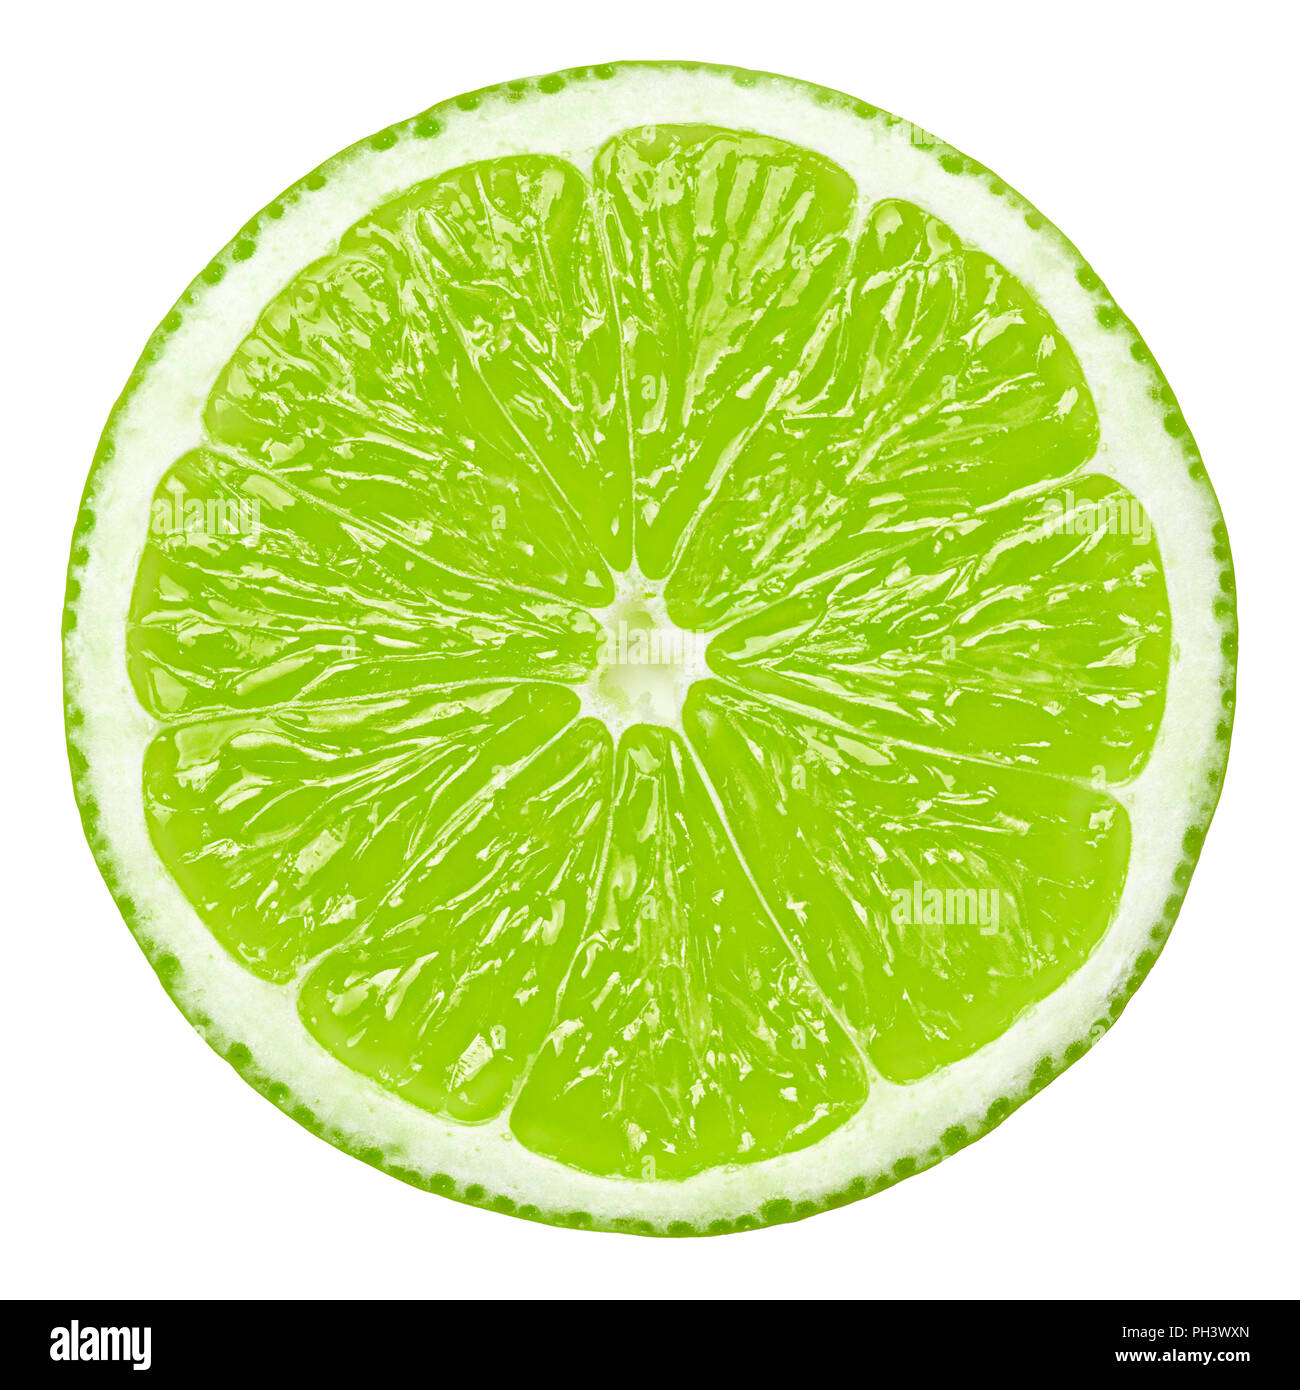 lime slice, clipping path, isolated on white background Stock Photo: 217059773 - Alamy